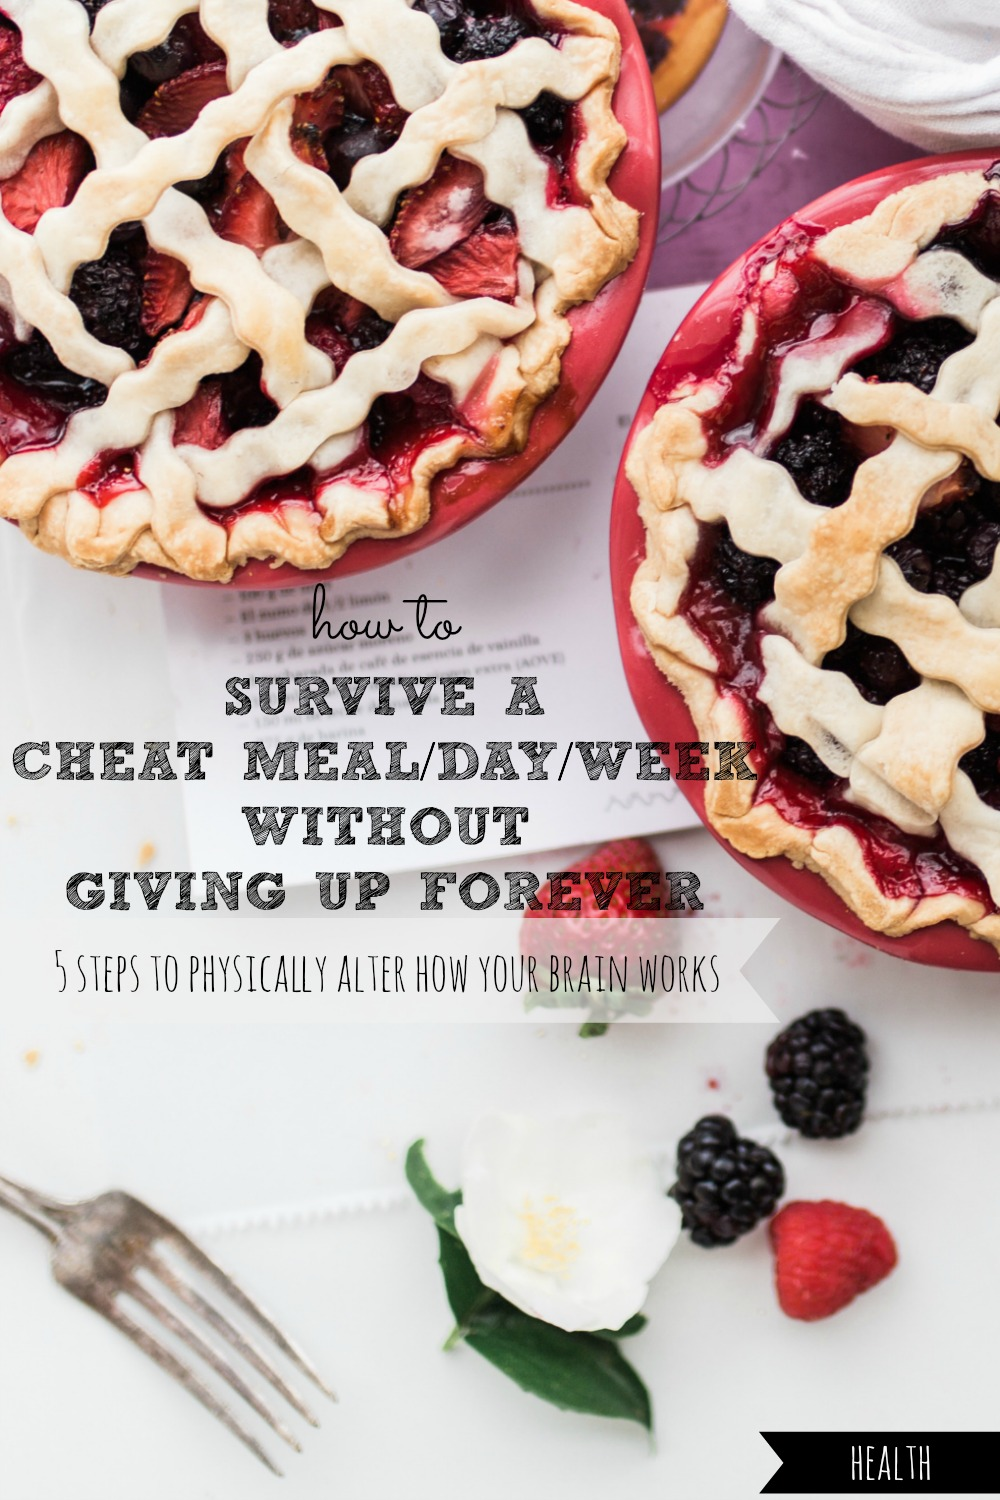 Does one cheat meal usually end in the crash and burn of all of your good habits? Here's how to physically rewire your brain to avoid cheat meal disaster TODAY! #cheat #meal #meals #day #days #week #weeks #weekend #weekends #survive #give #giving #up #alter #brain #remember #why #started #kill #excuses #take #responsibility #reasonable #realistic